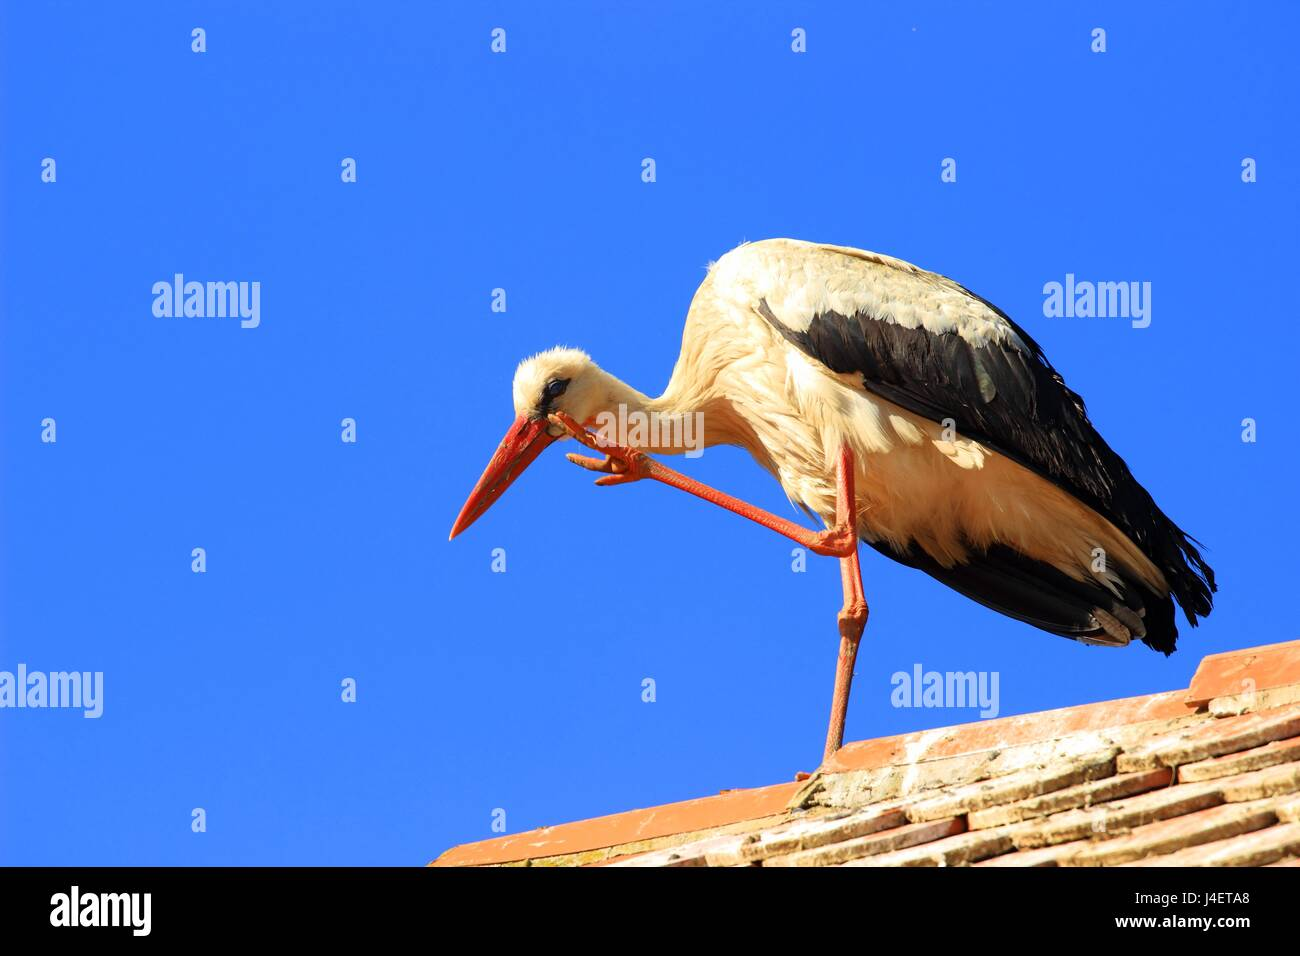 White stork scratching on house roof - Stock Image